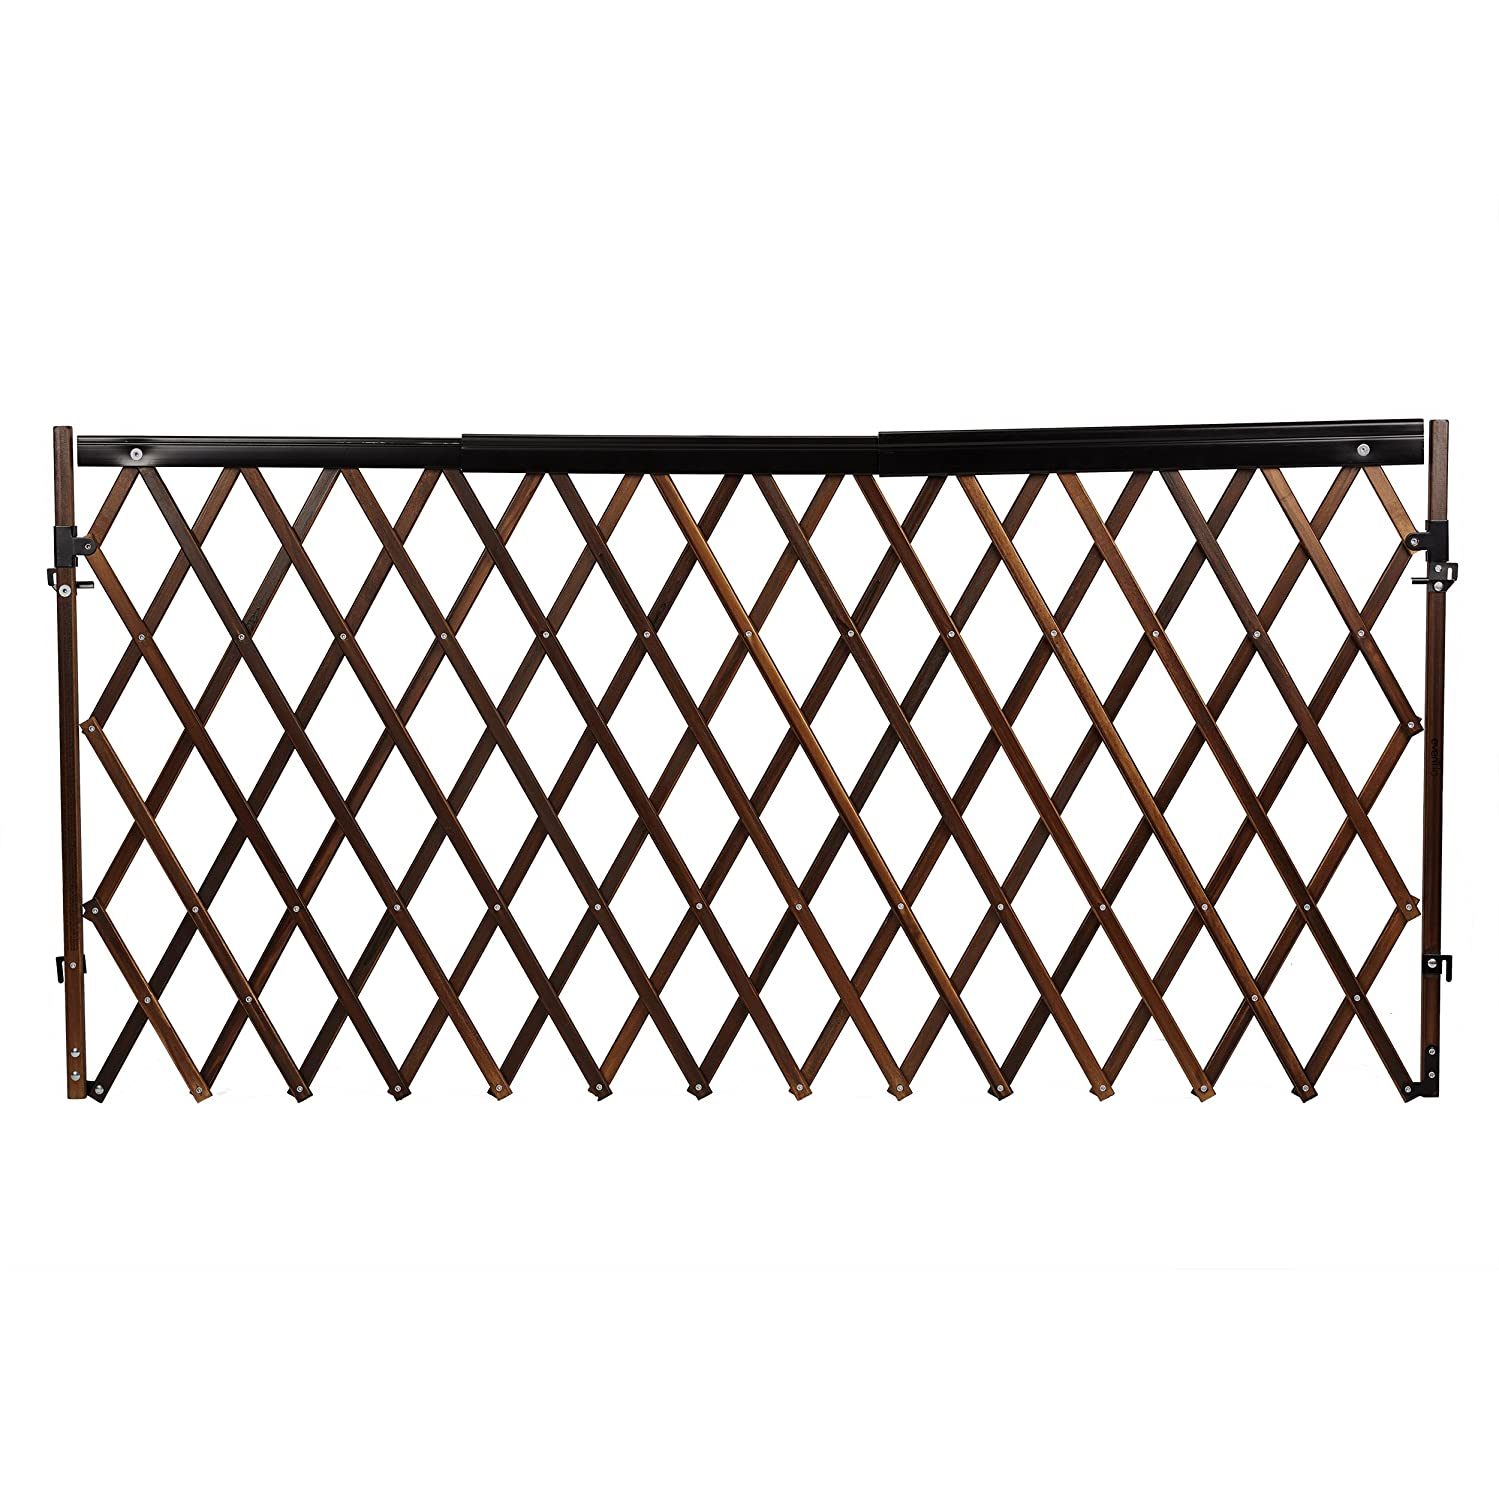 Evenflo Expansion Swing Wide Gate Extra-Wide Gate Farmhouse, Dark Wood